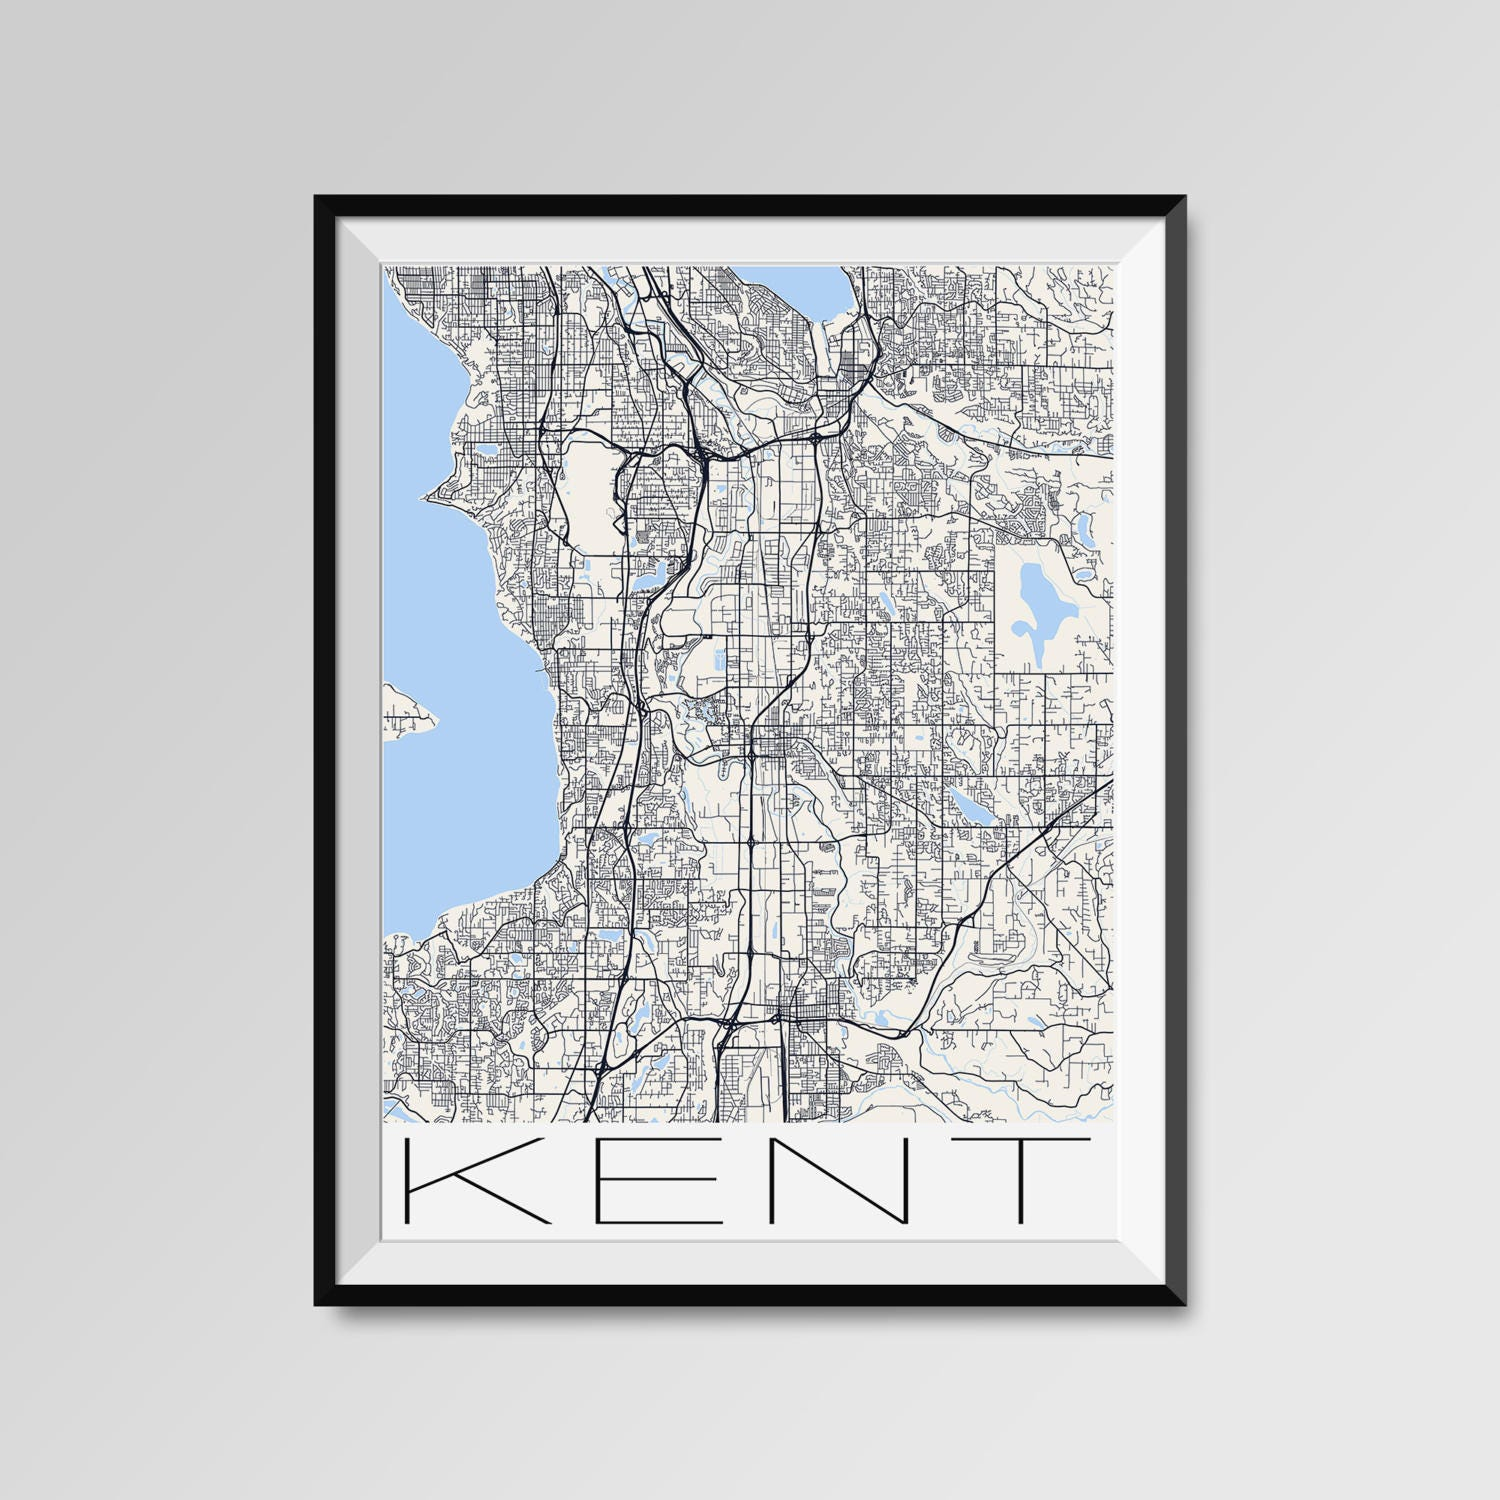 KENT Washington Map, Kent City Map Print, Kent Map Poster, Kent Wall on fraser valley regional district map, derbyshire map, norte map, hertfordshire map, sussex map, cornwall map, london map, scotland map, mercia map, khan map, isle of wight map, dorsetshire map, cleveland park map, maidstone map, flevoland map, wychwood map, united kingdom map, wales map, surrey map, hampshire map,